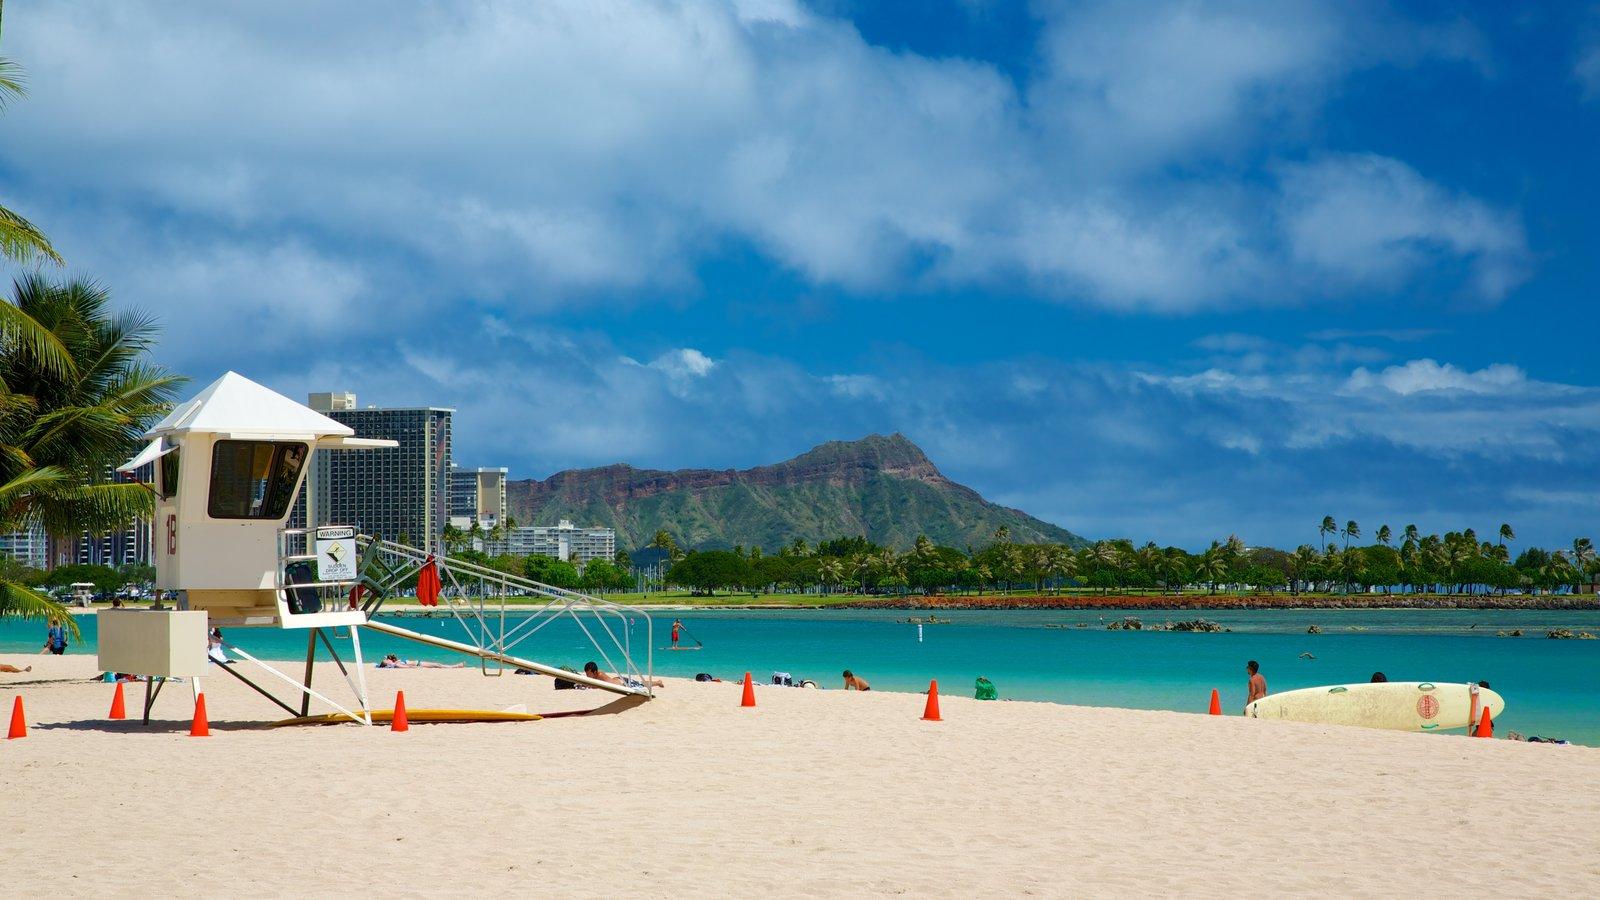 Ala Moana Beach Park showing surfing, a coastal town and tropical scenes